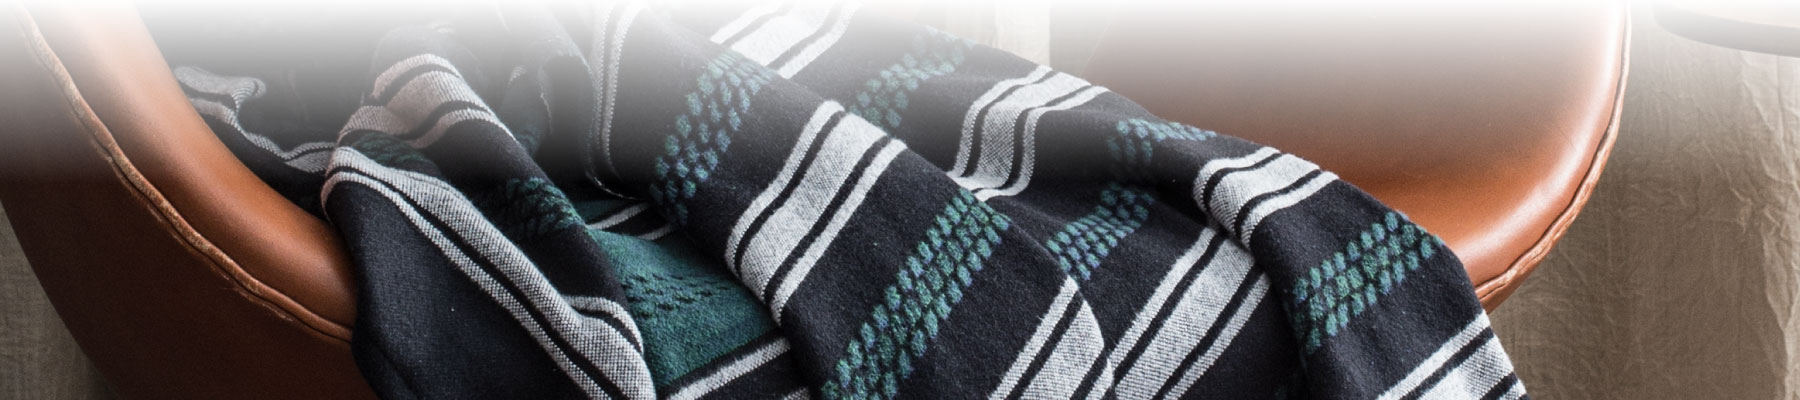 Throws, Cushions & Rugs - Ekelund Weavers Sweden